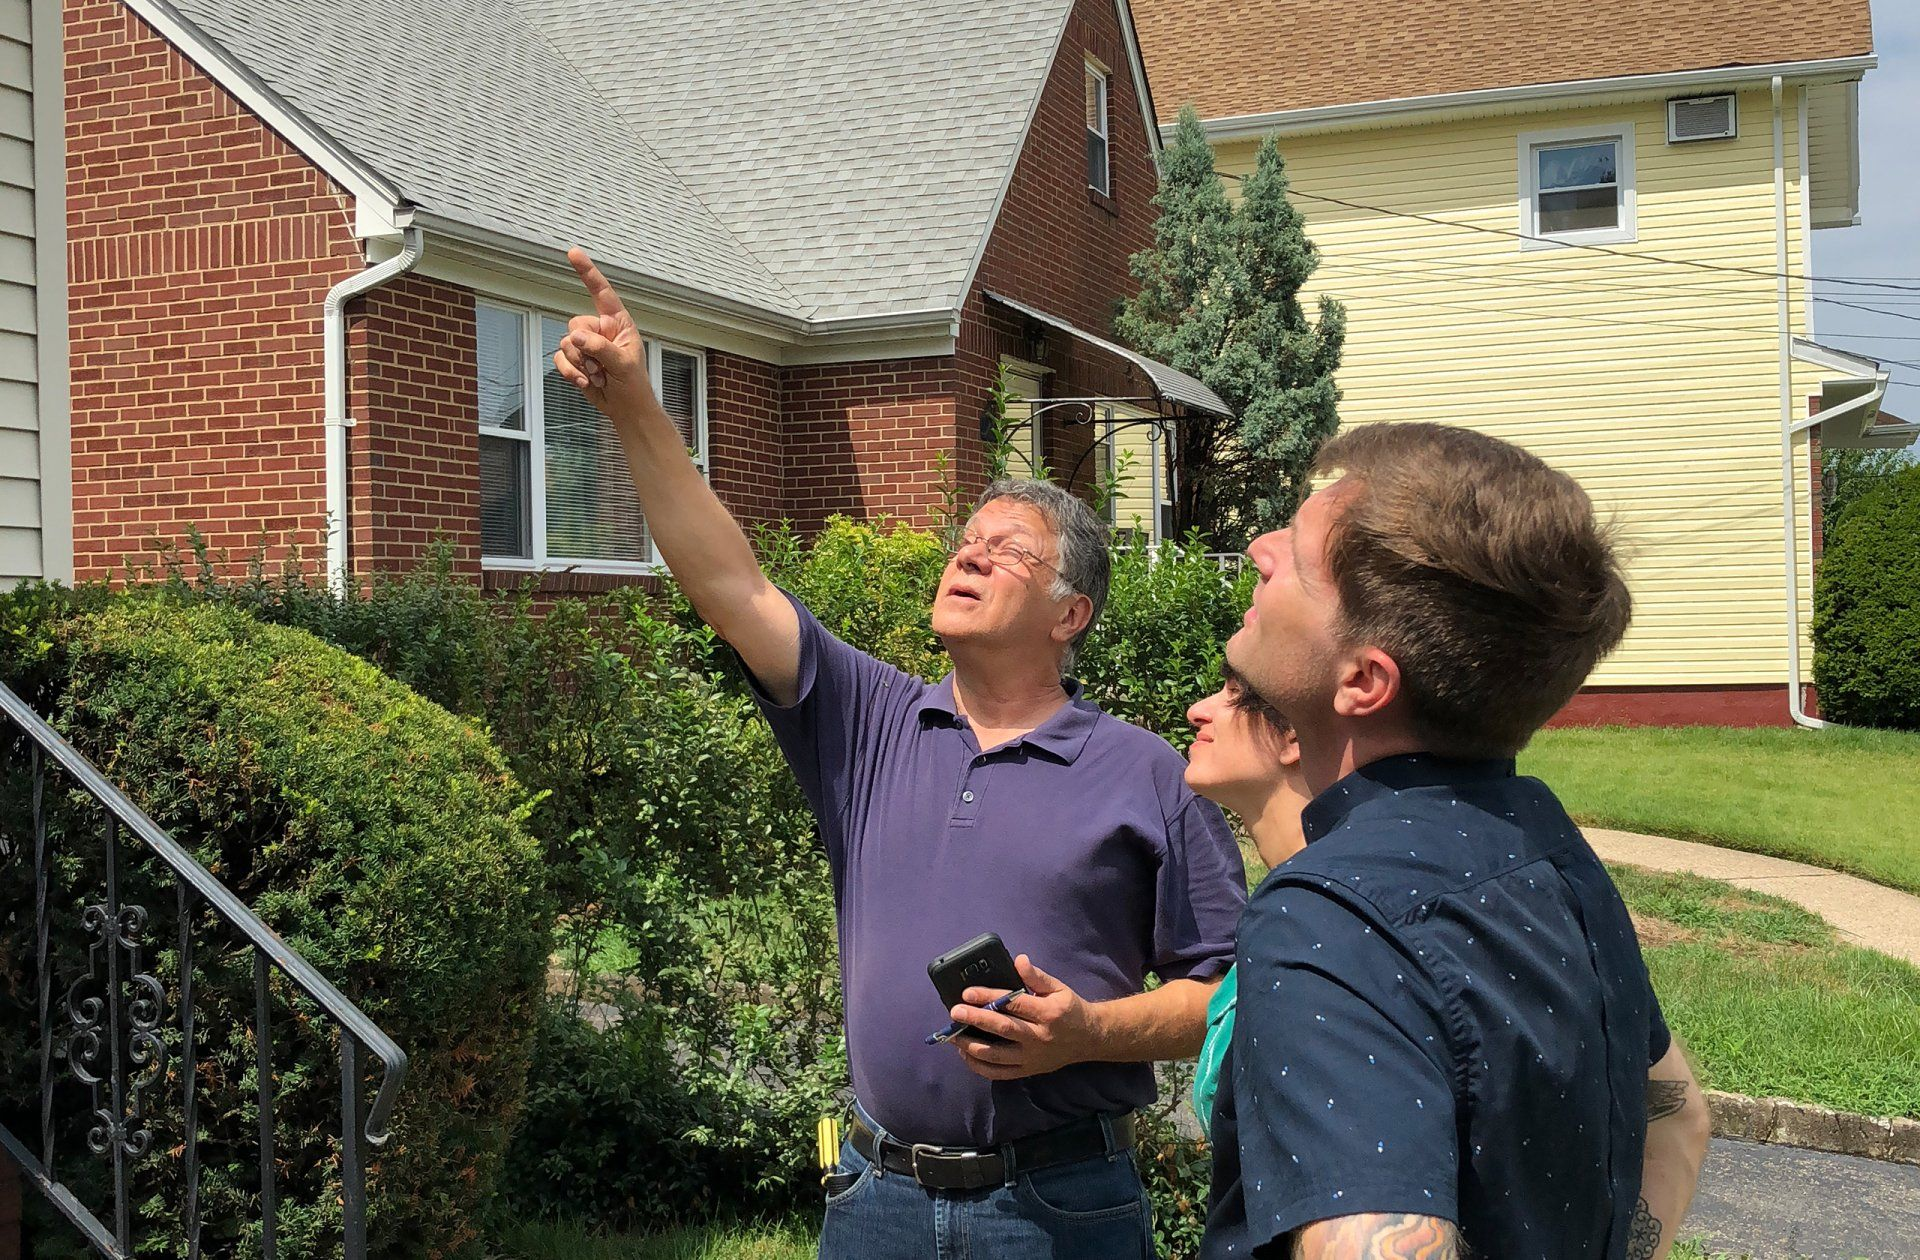 paul explaining home inspection to couple